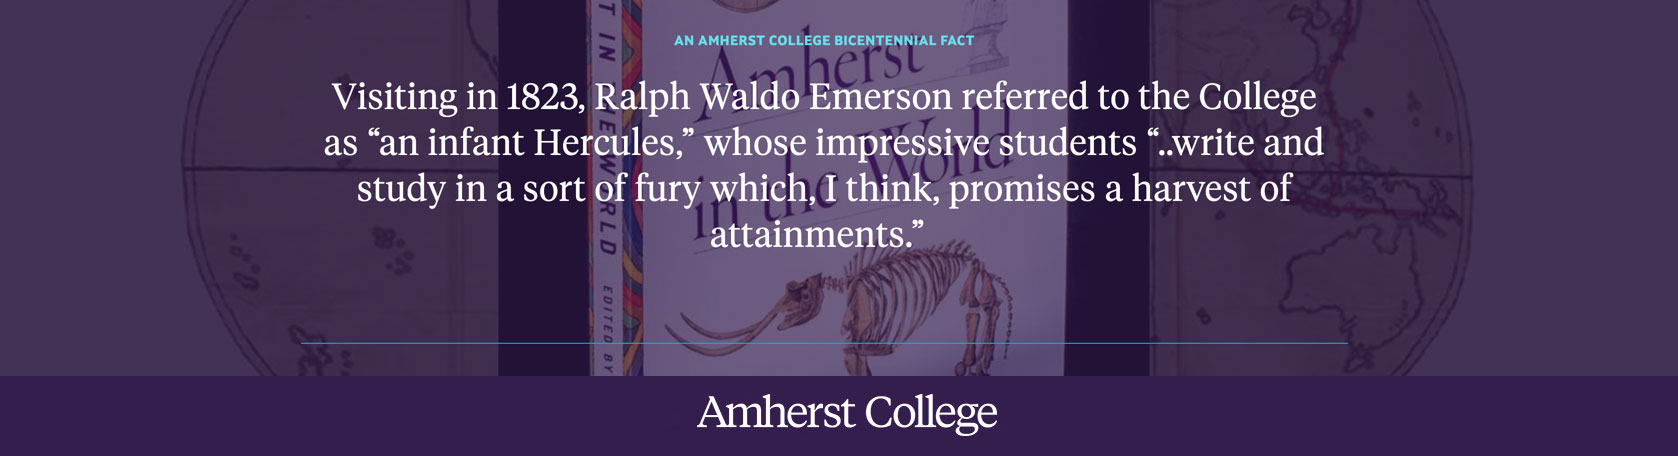 A quote from Martha Saxton's book Amherst in the World